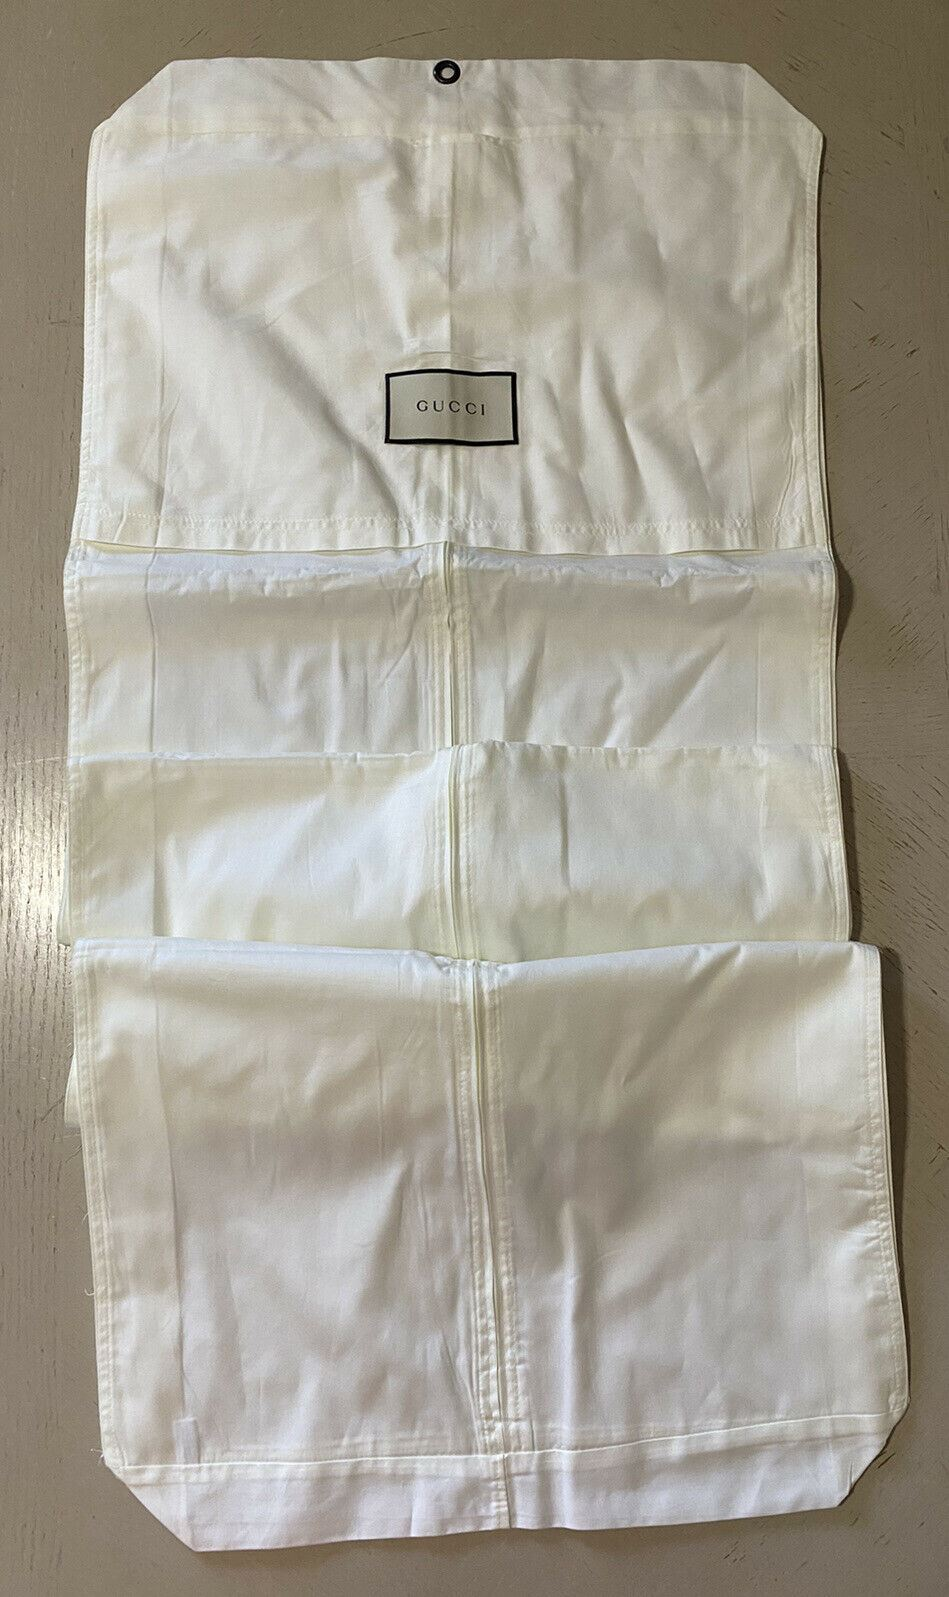 Brand New Gucci Garment Suit,  Any Clothing Unisex White  Bag